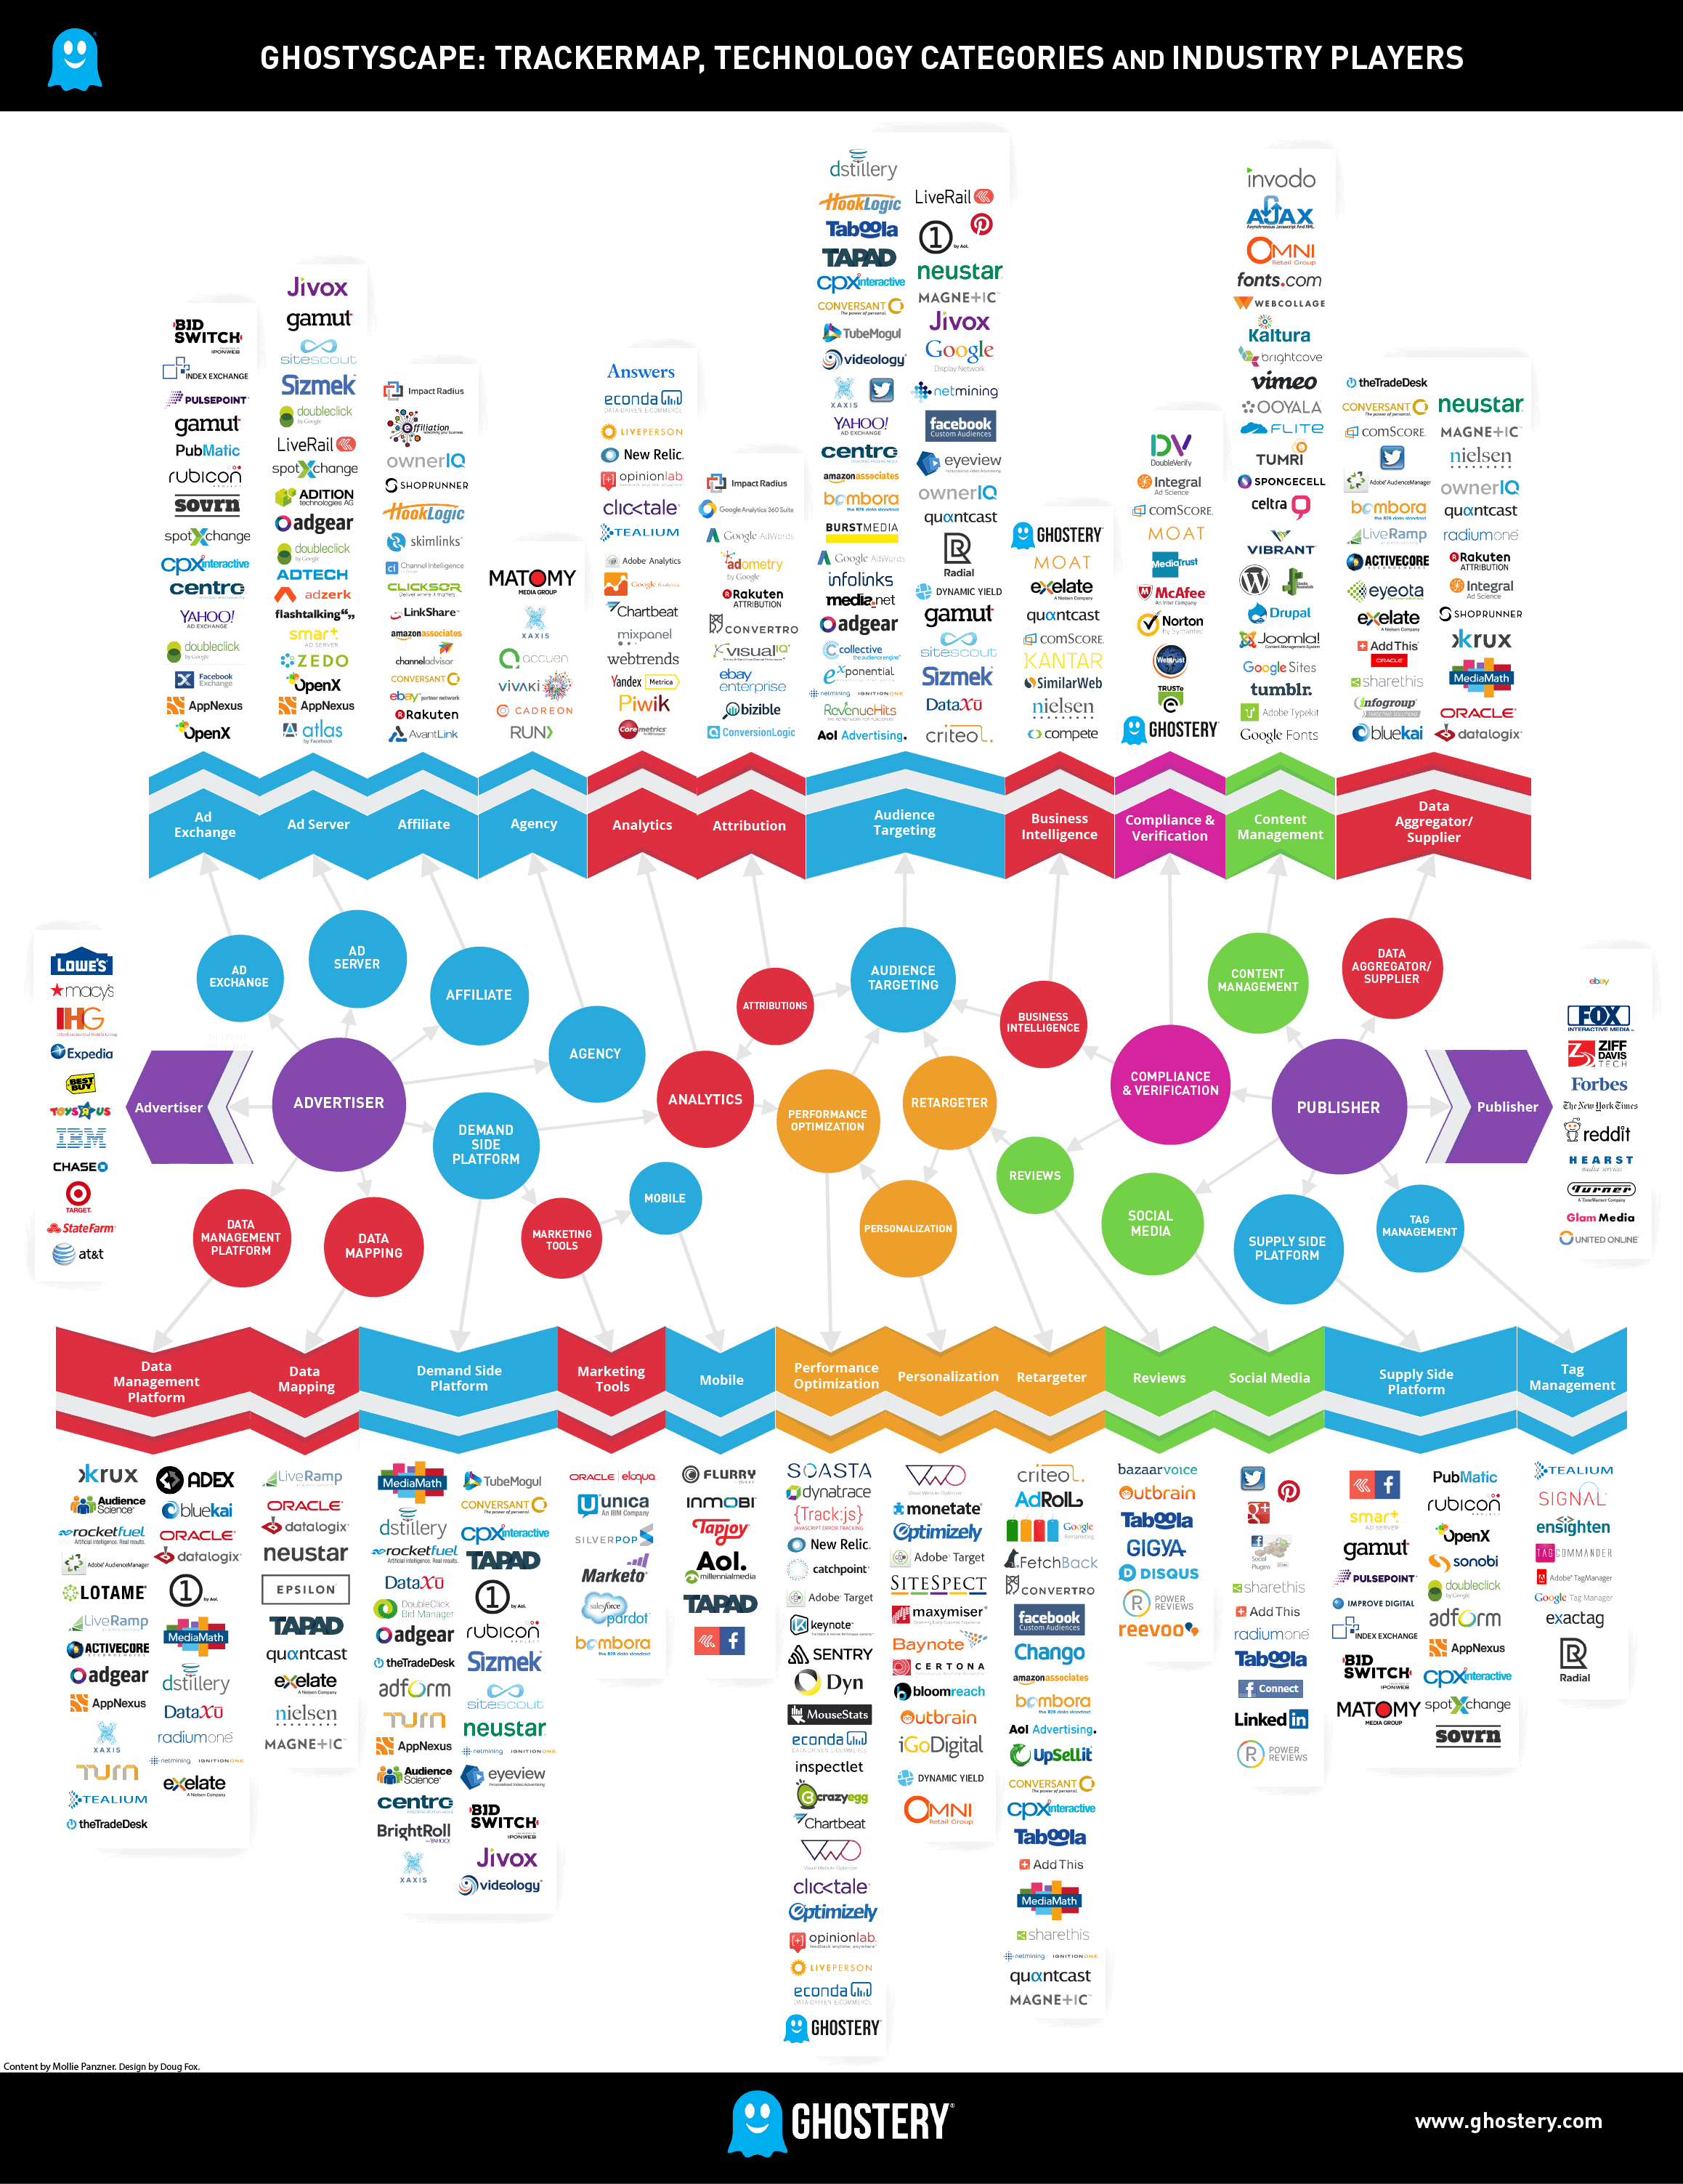 Ghosttspace : Trackermap, Technology Categories and Industry Players